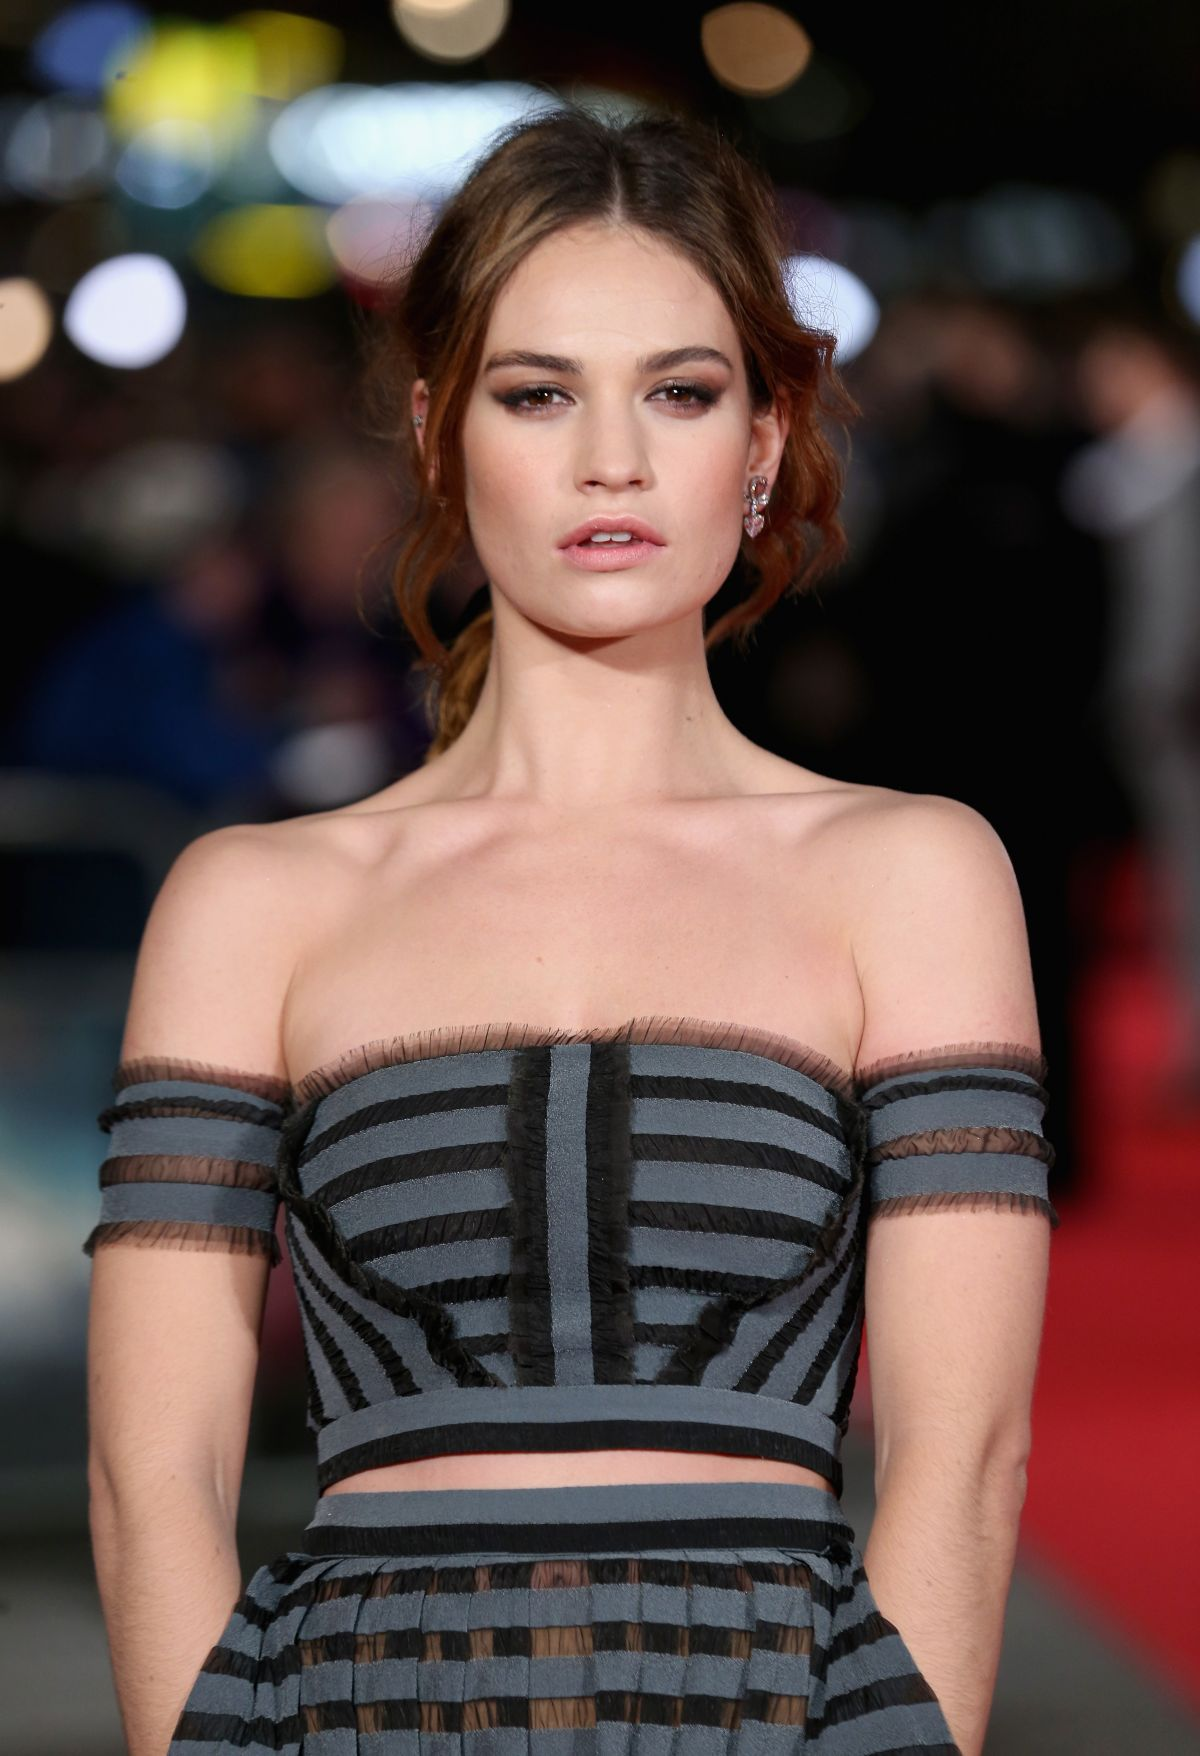 LILY JAMES at Pride and Prejudice and Zombies Premiere in London 02/01/2016